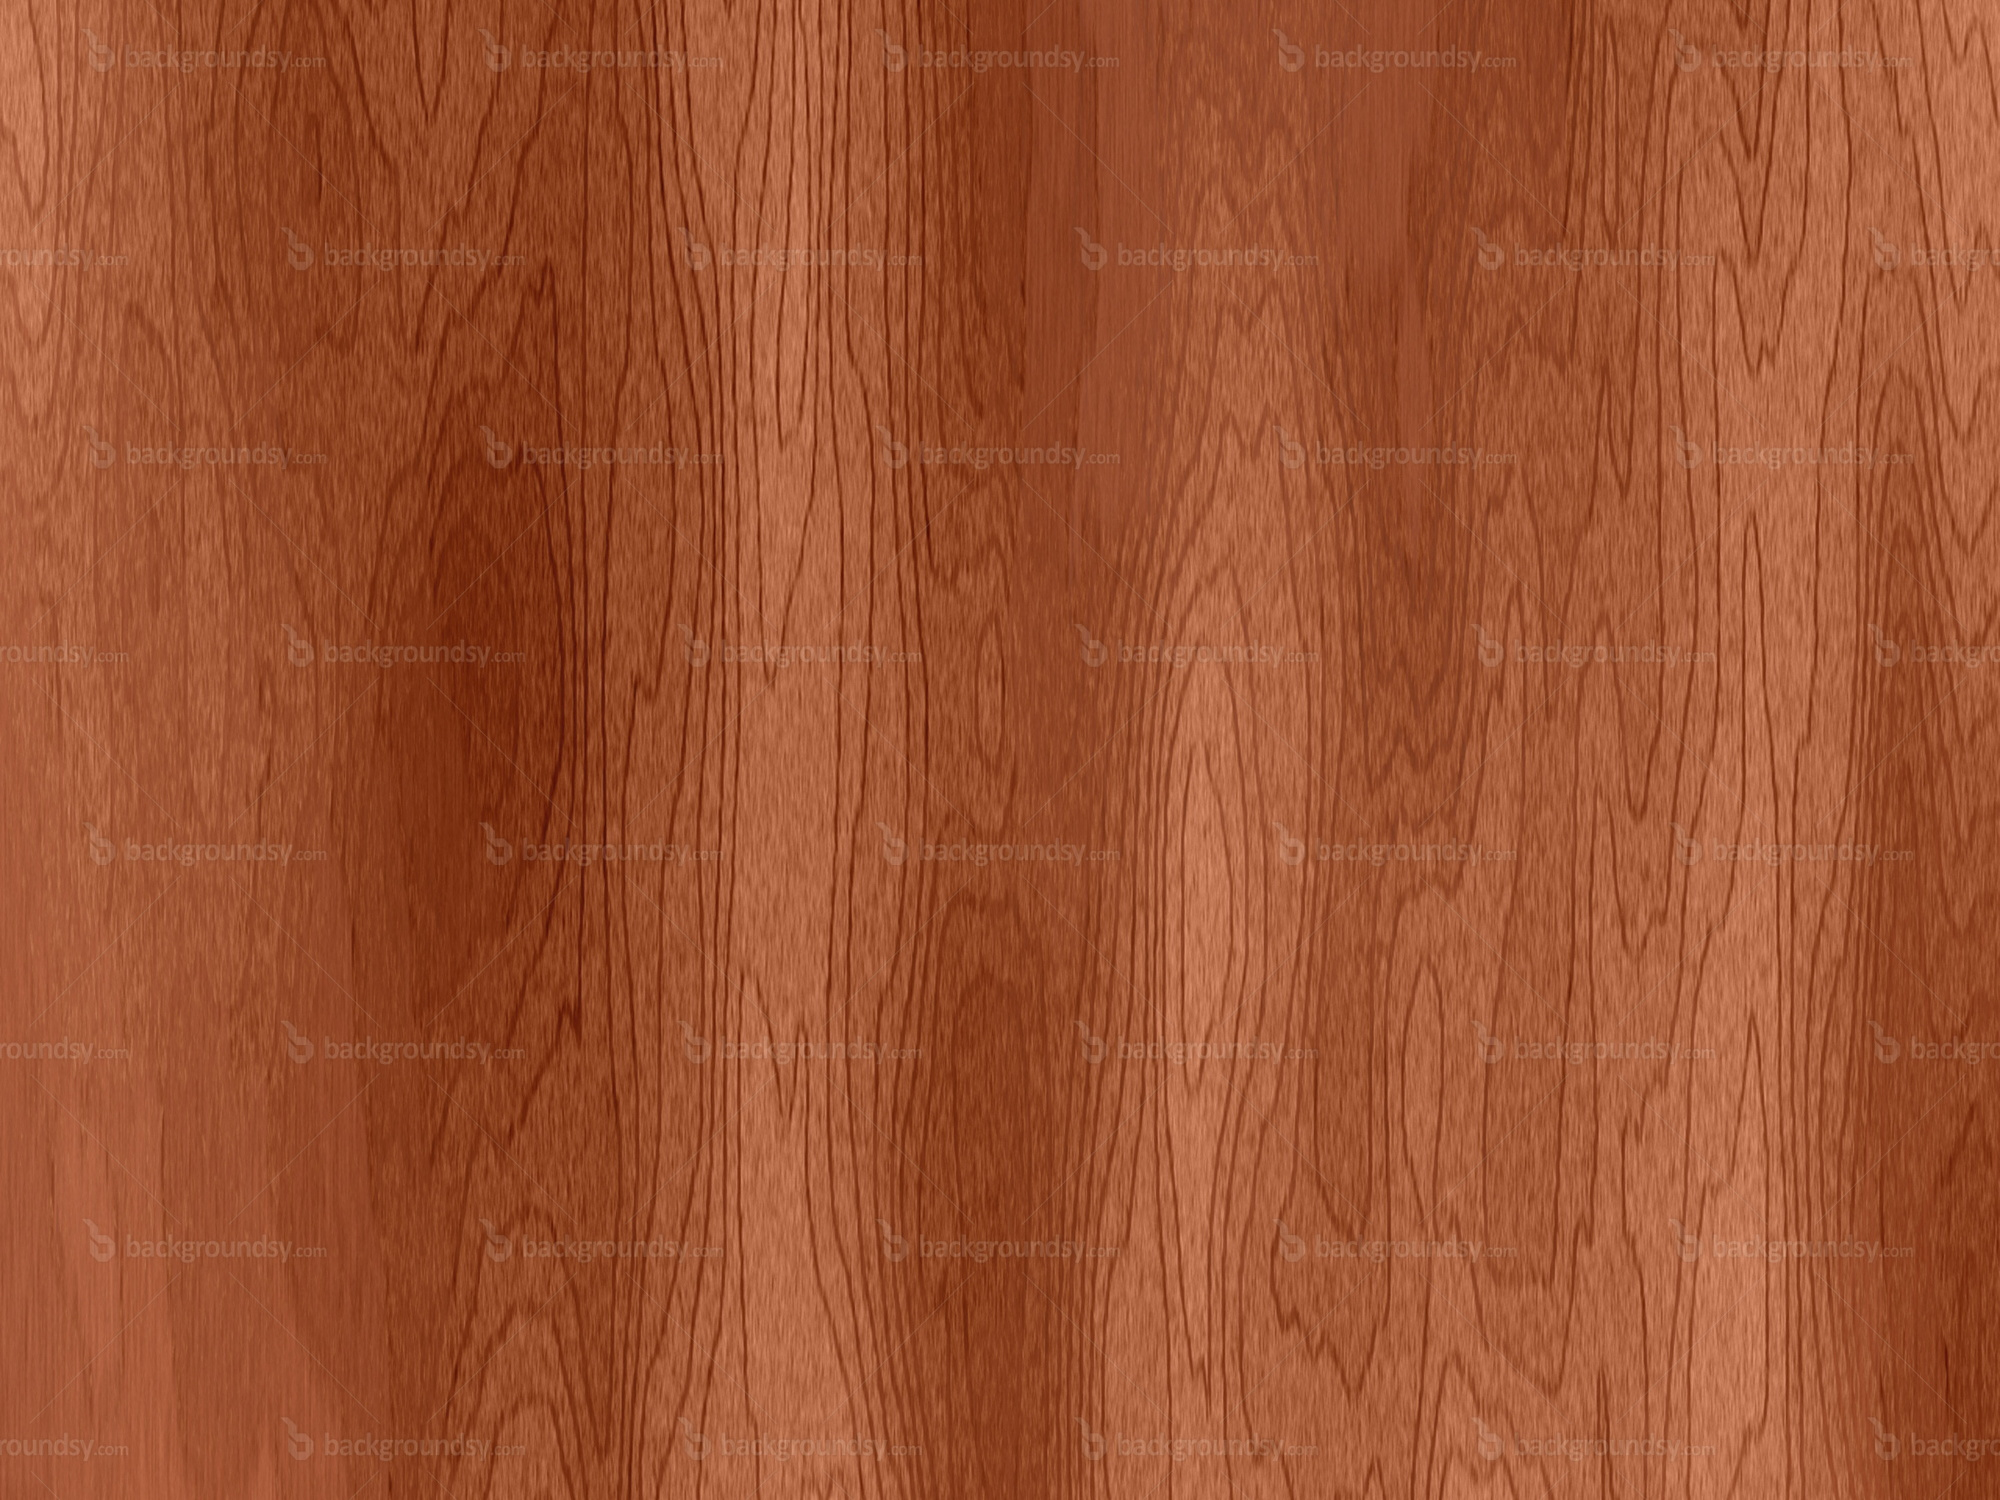 Wood Texture Backgroundsy Com